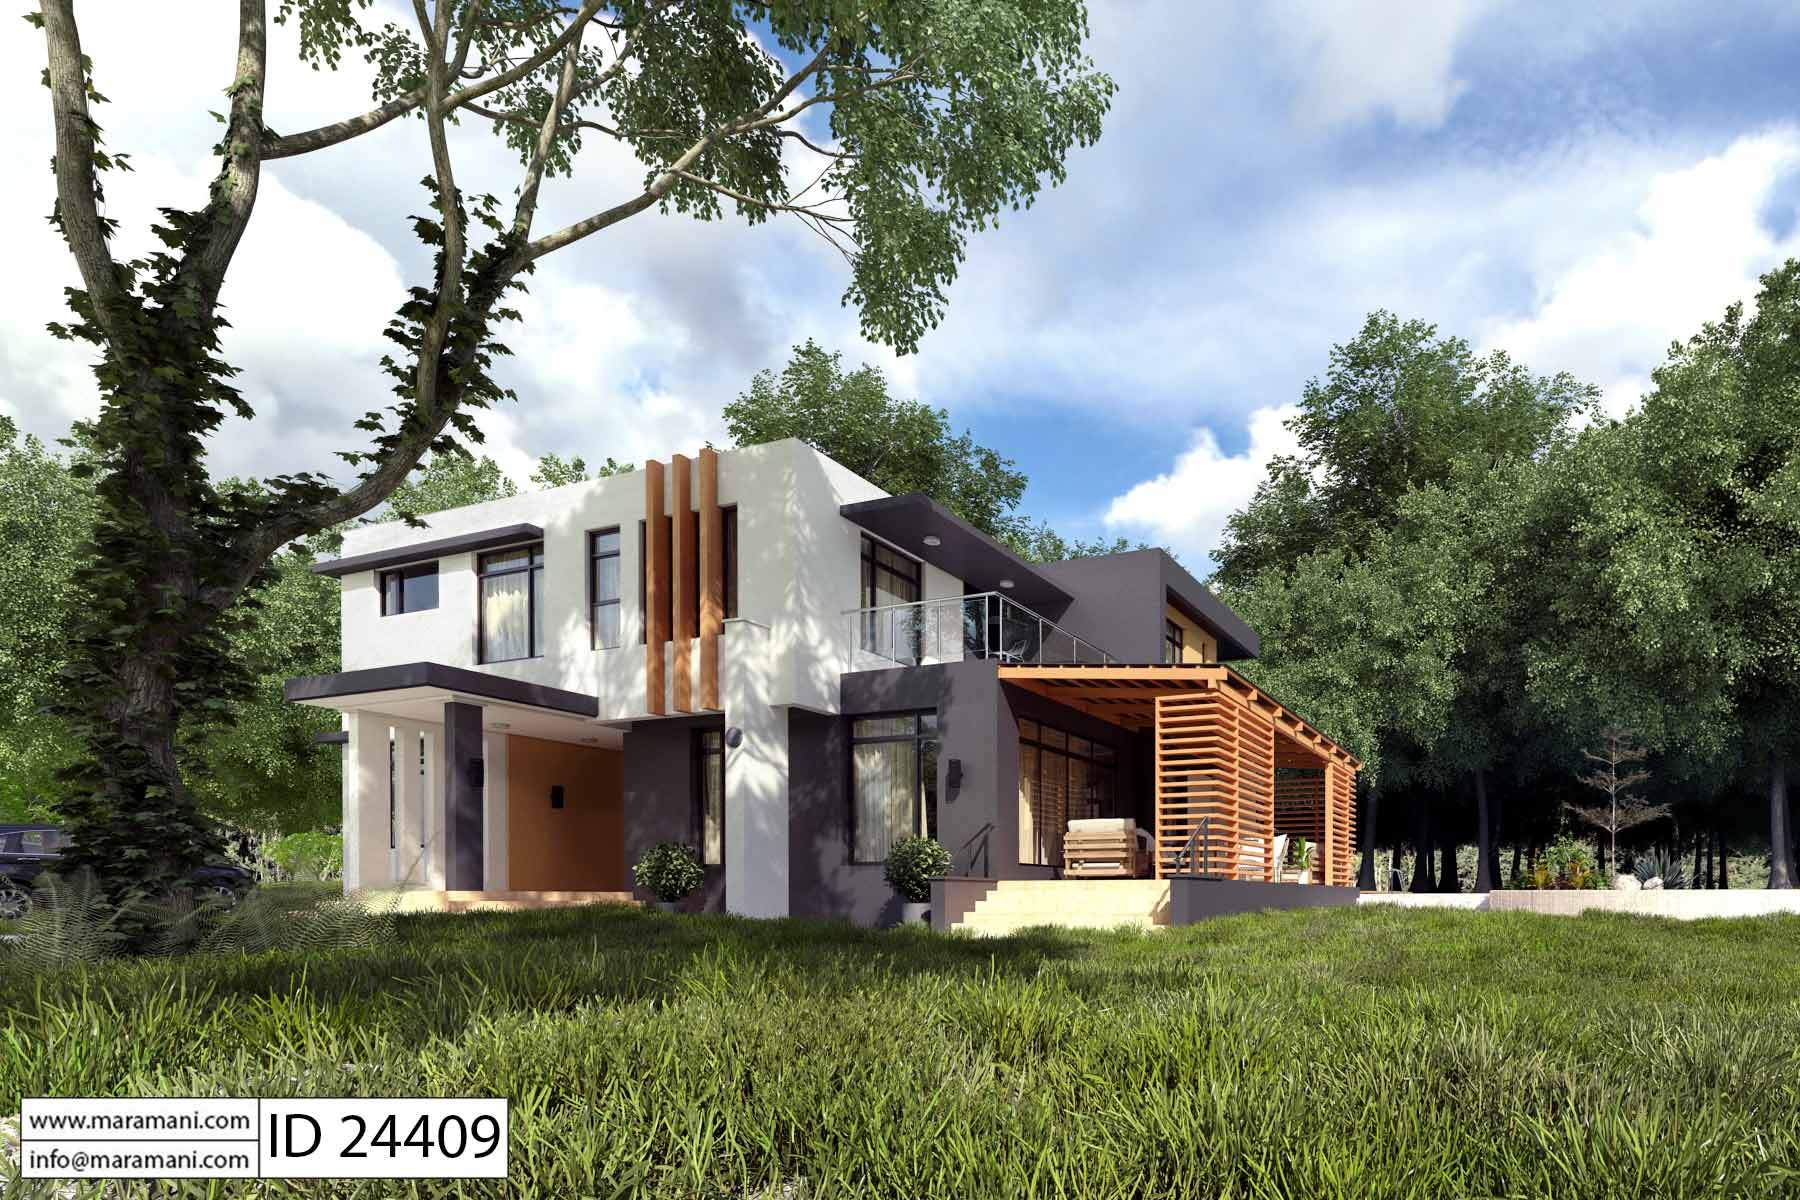 modern 4 bedroom house plan id 24409 designs by maramani 16216 | modern 4 bedroom house plan id 24409 2 v 1509445084